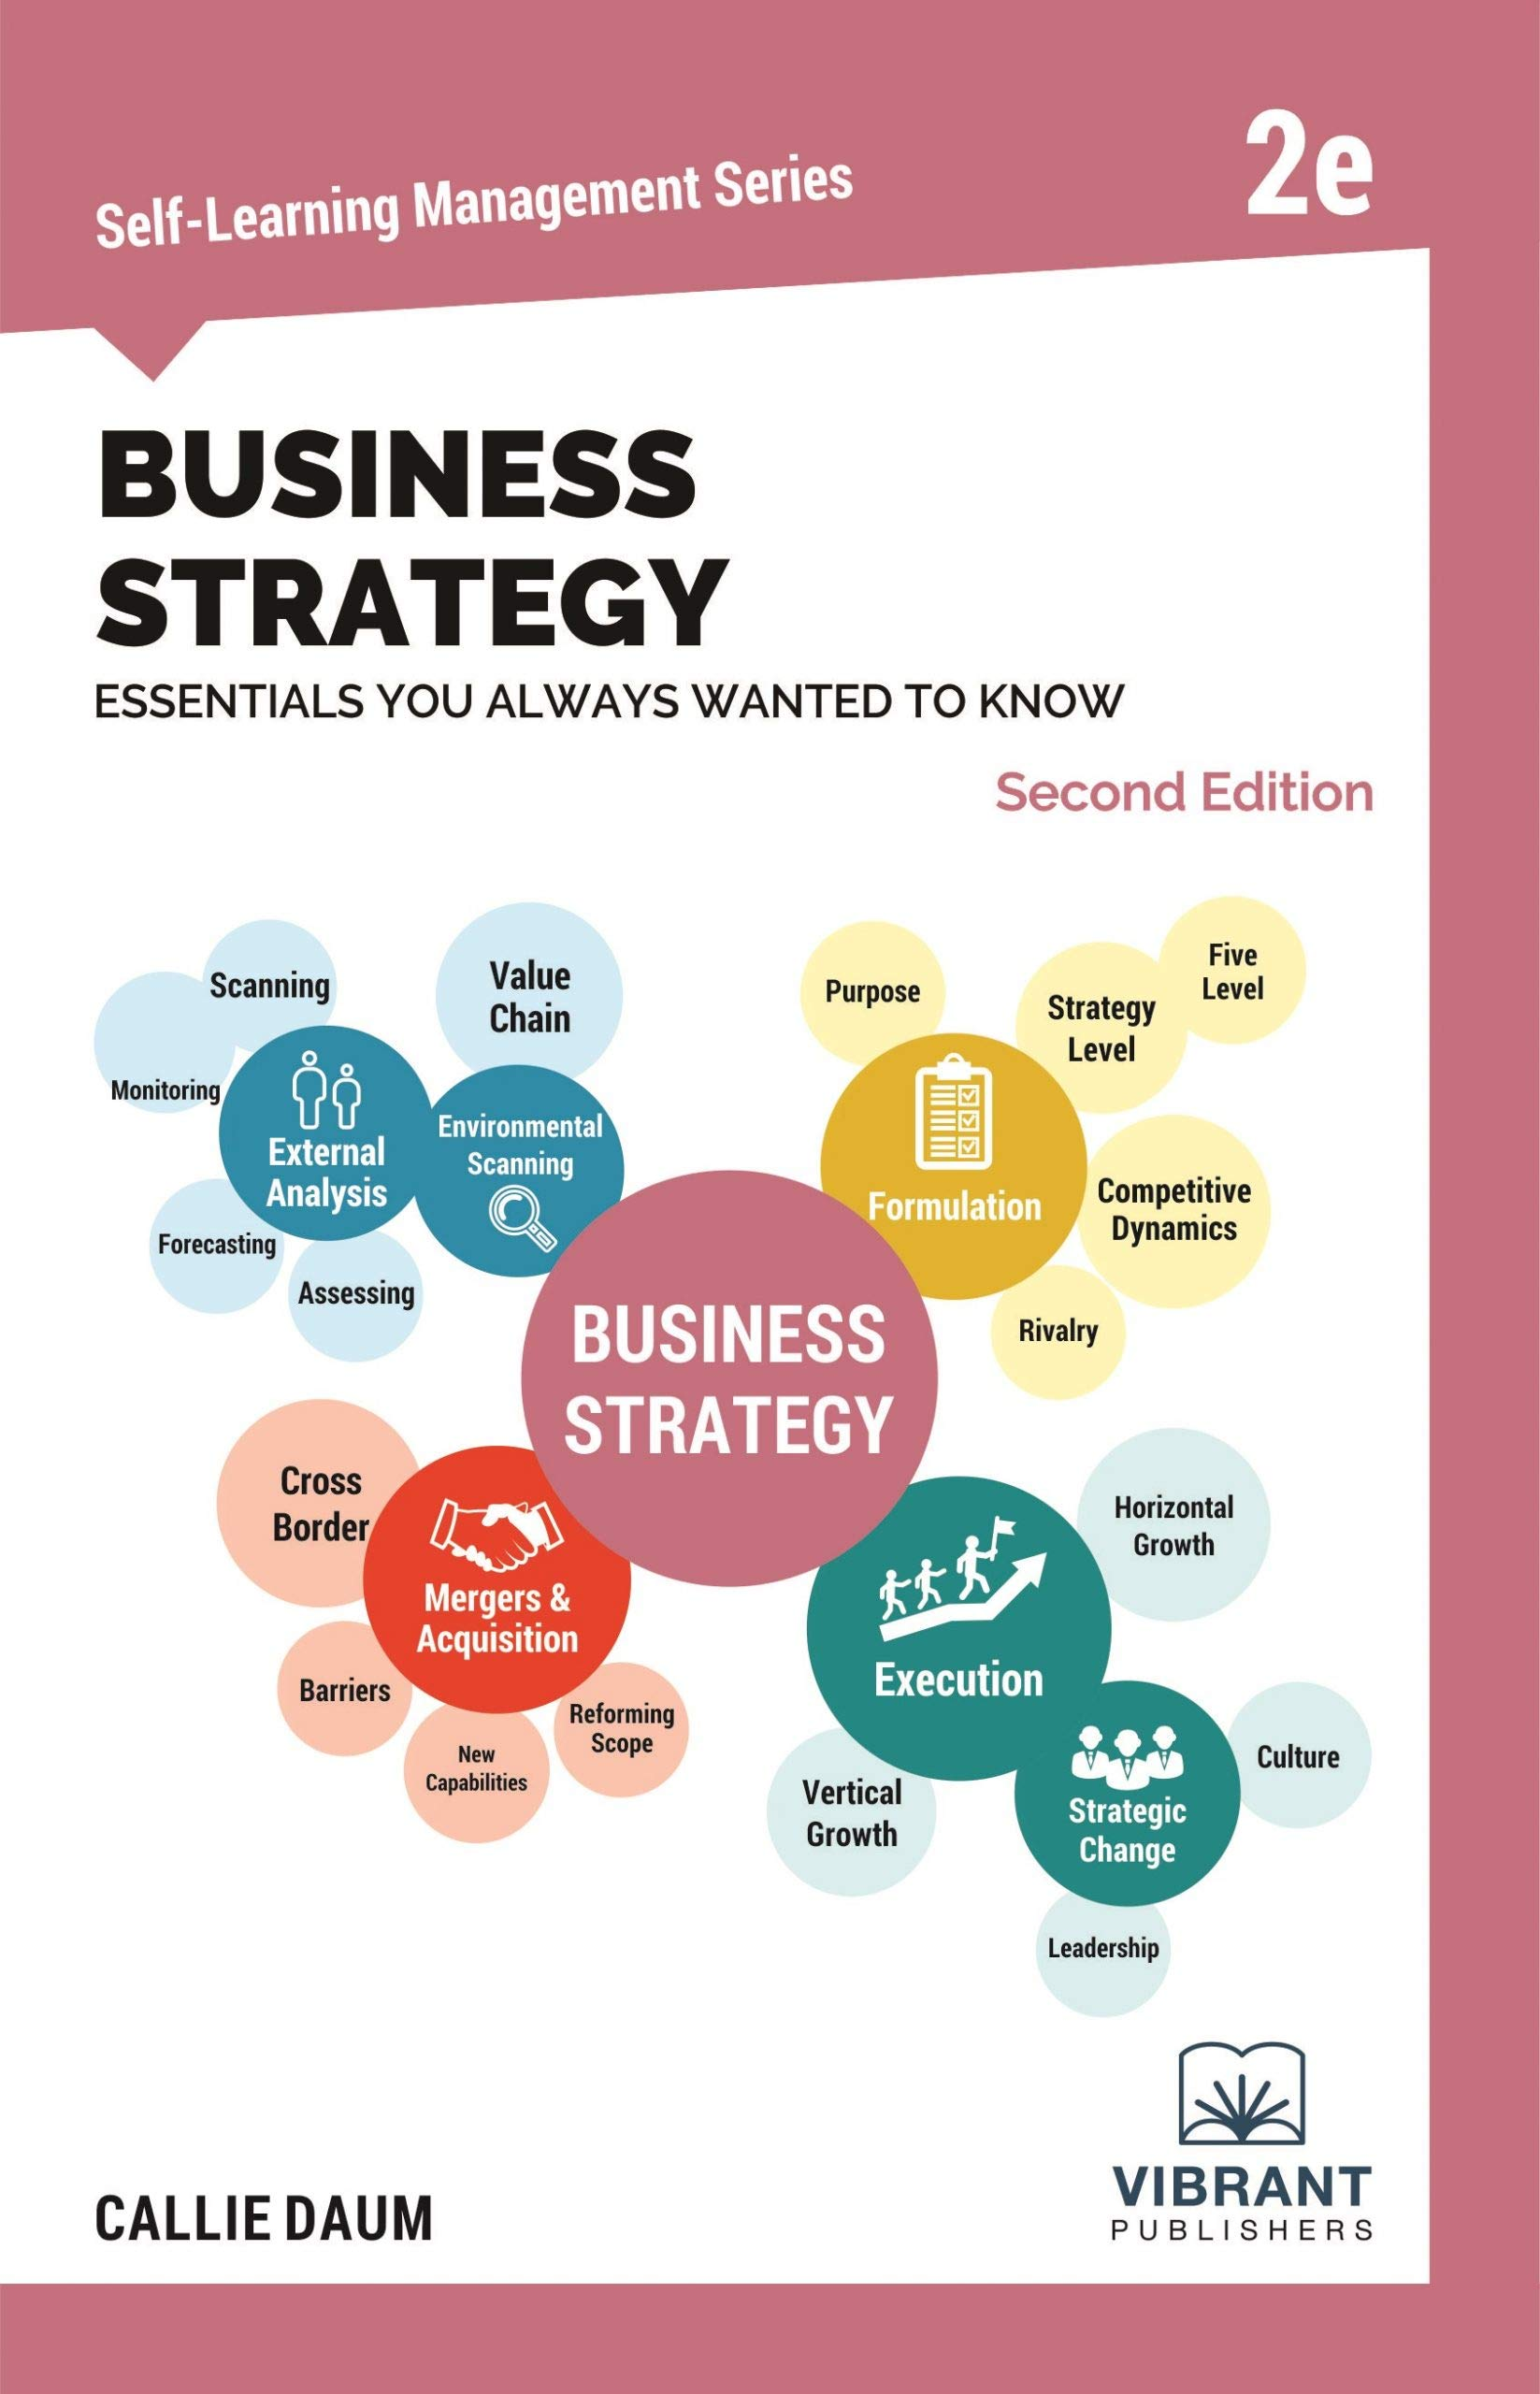 Business Strategy Essentials You Always Wanted To Know (Second Edition) (Self Learning Management Series)